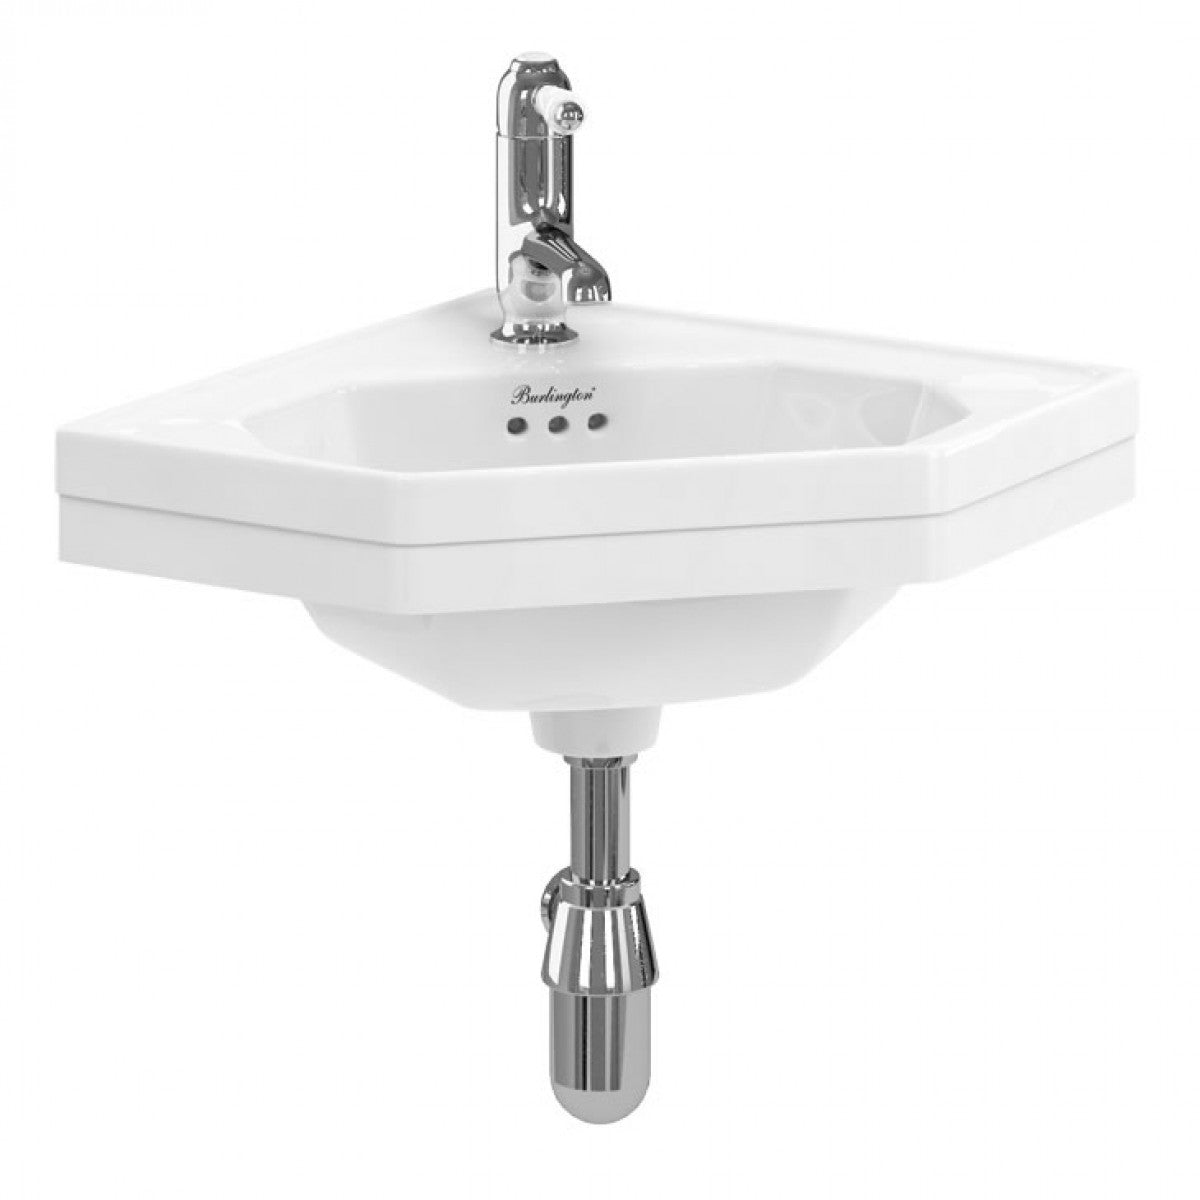 BURLINGTON CORNER CLOAKROOM BASIN